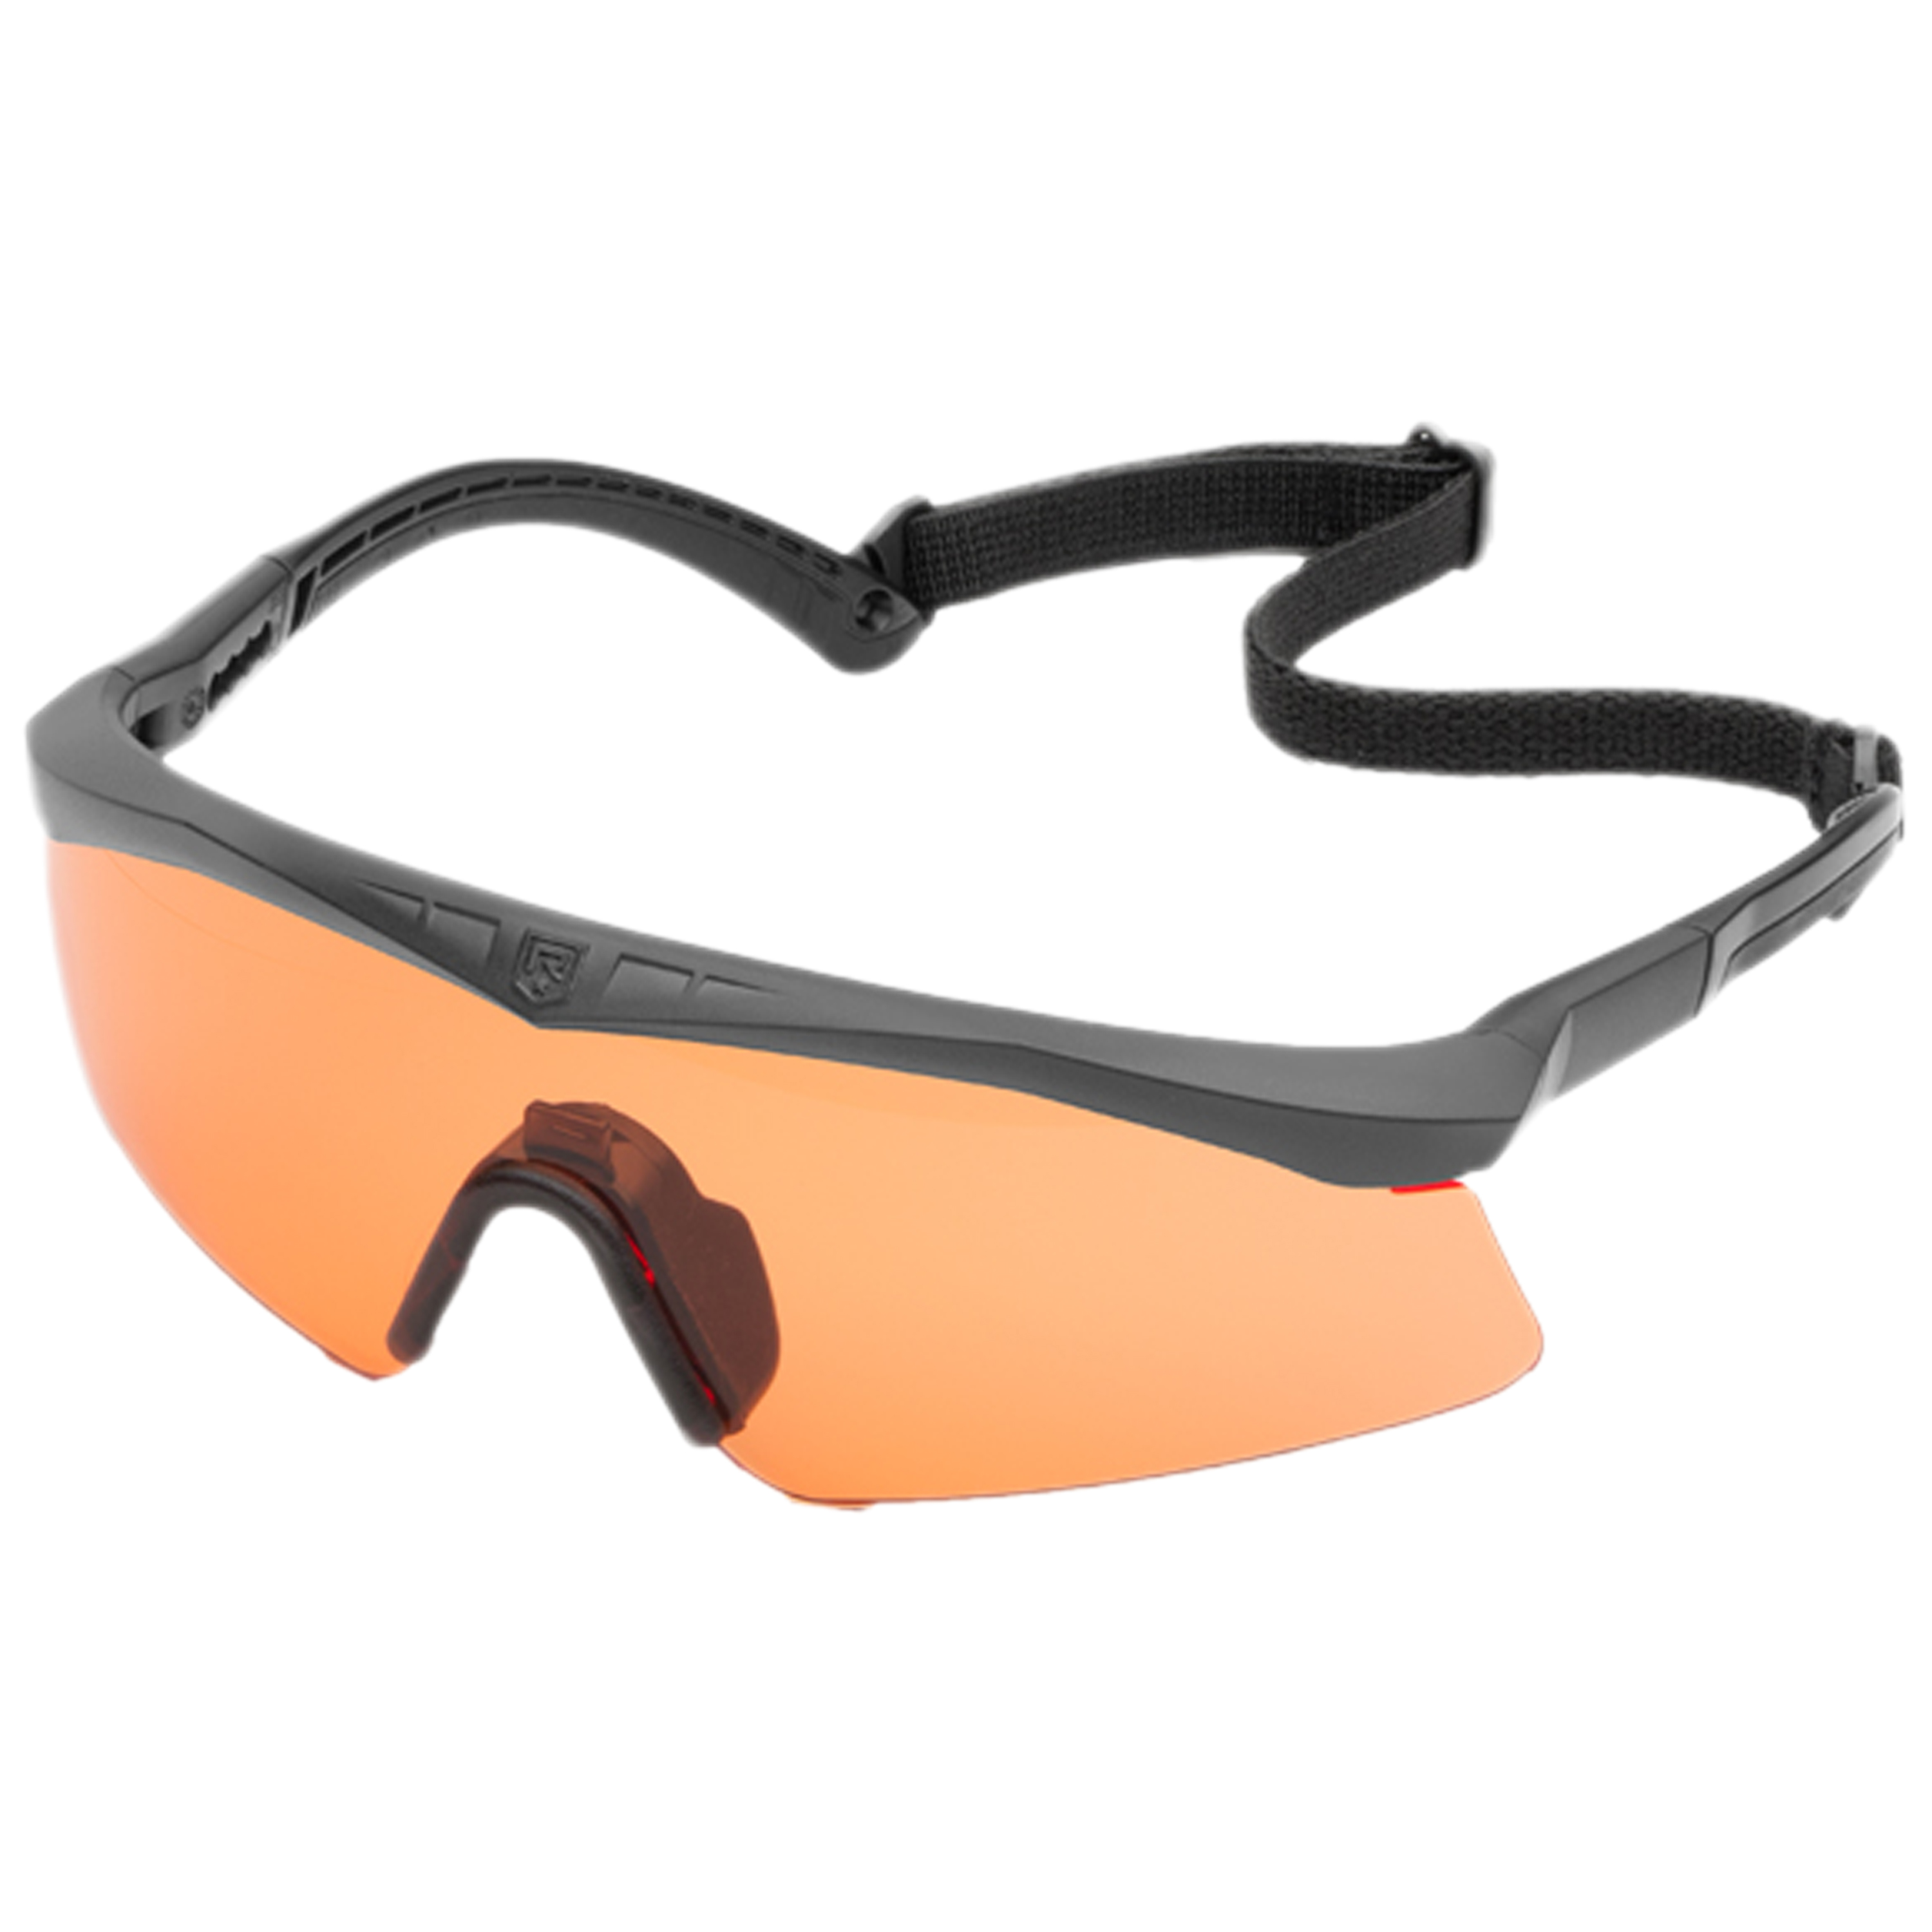 Revision Brille Sawfly Basic Kit schwarz oranges Glas